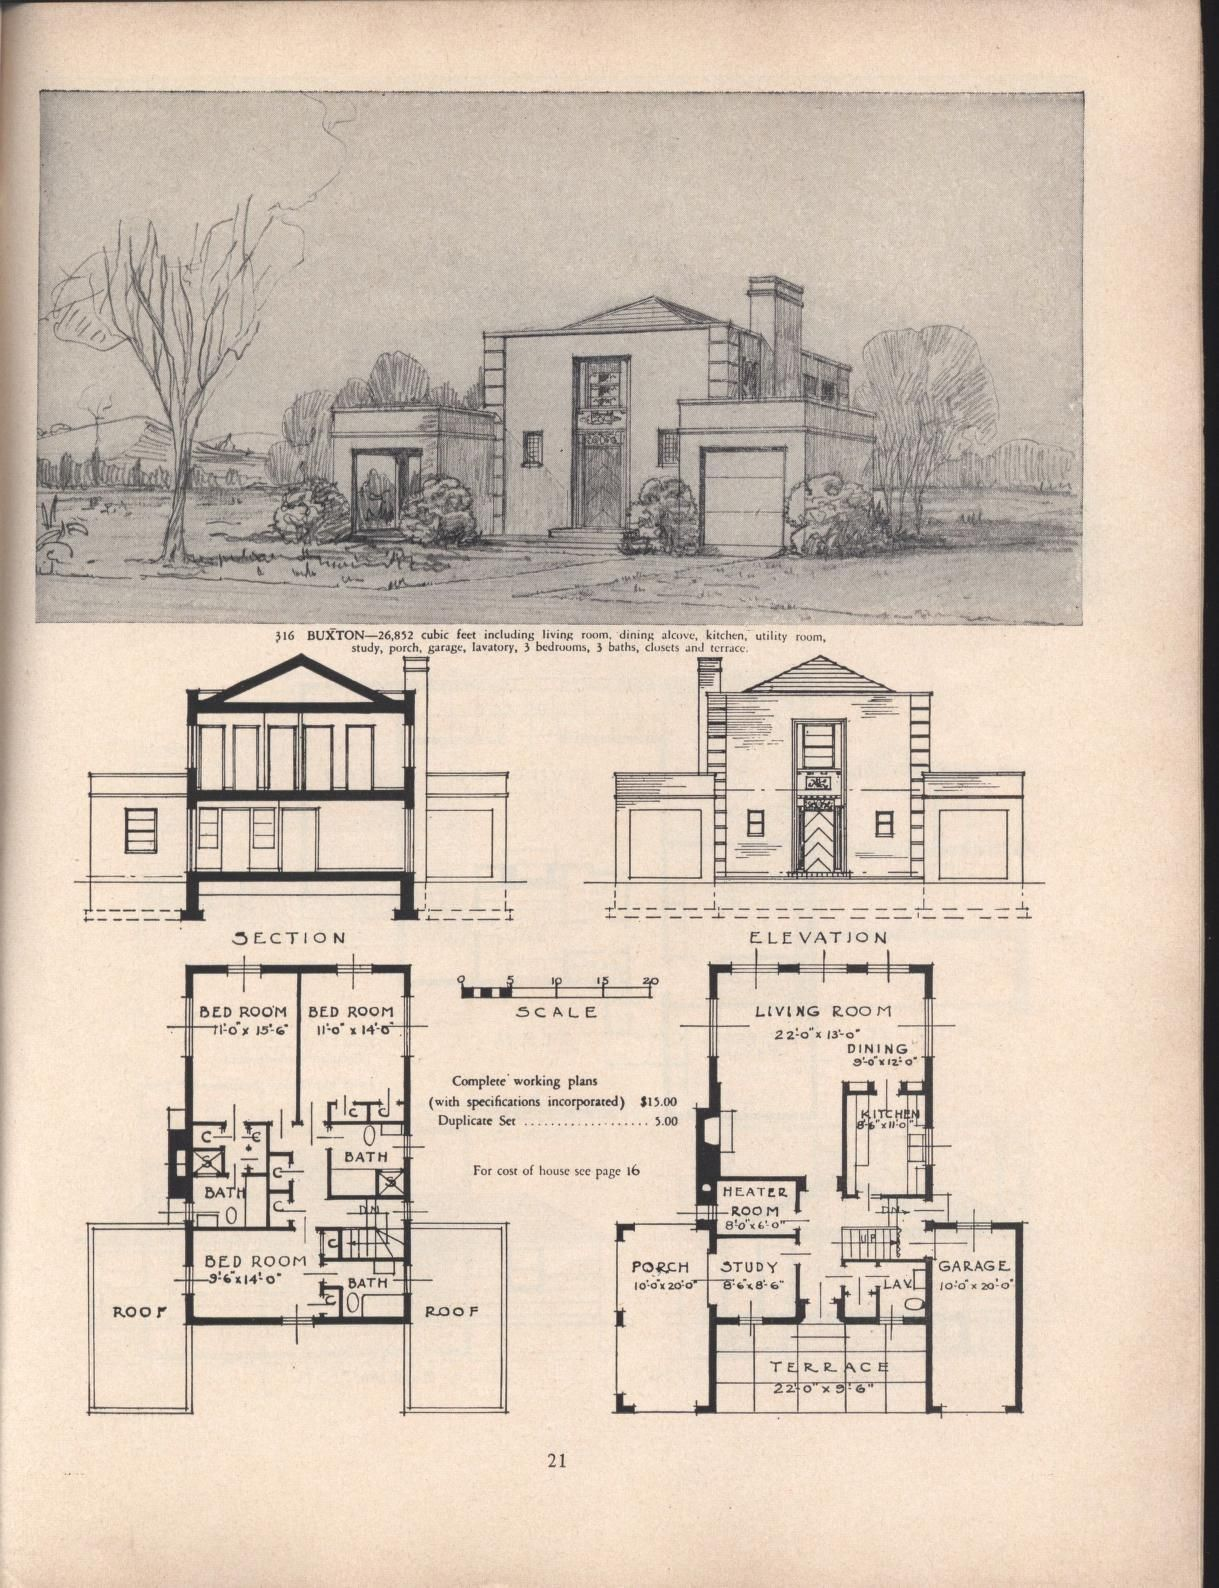 Books Of House Plans 2020 In 2020 House Plans Vintage House Plans House